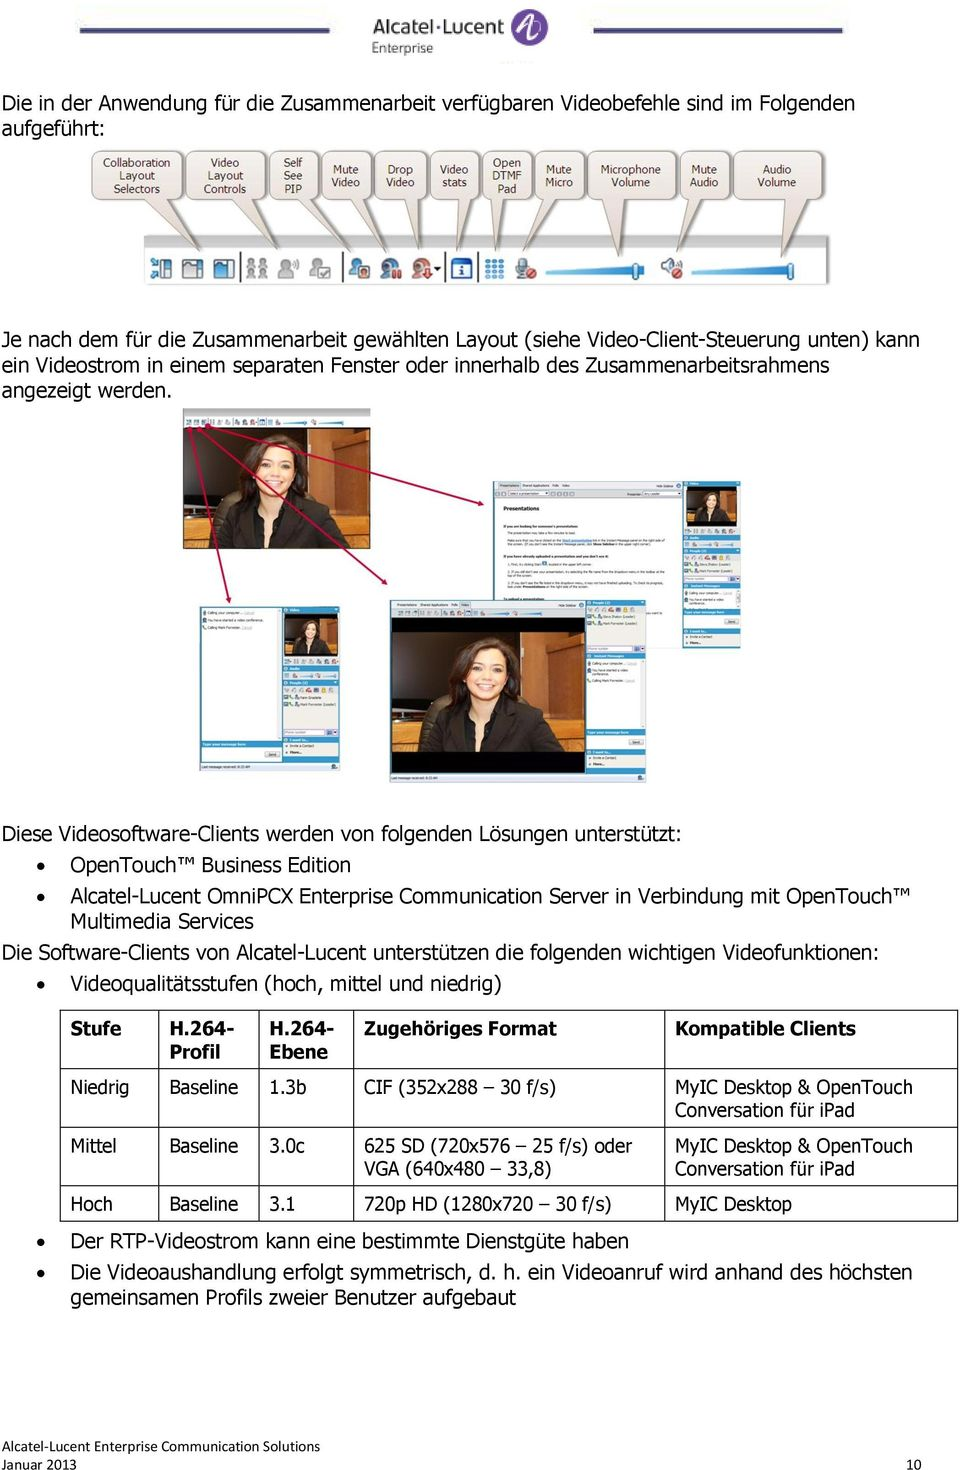 Diese Videosoftware-Clients werden von folgenden Lösungen unterstützt: OpenTouch Business Edition Alcatel-Lucent OmniPCX Enterprise Communication Server in Verbindung mit OpenTouch Multimedia